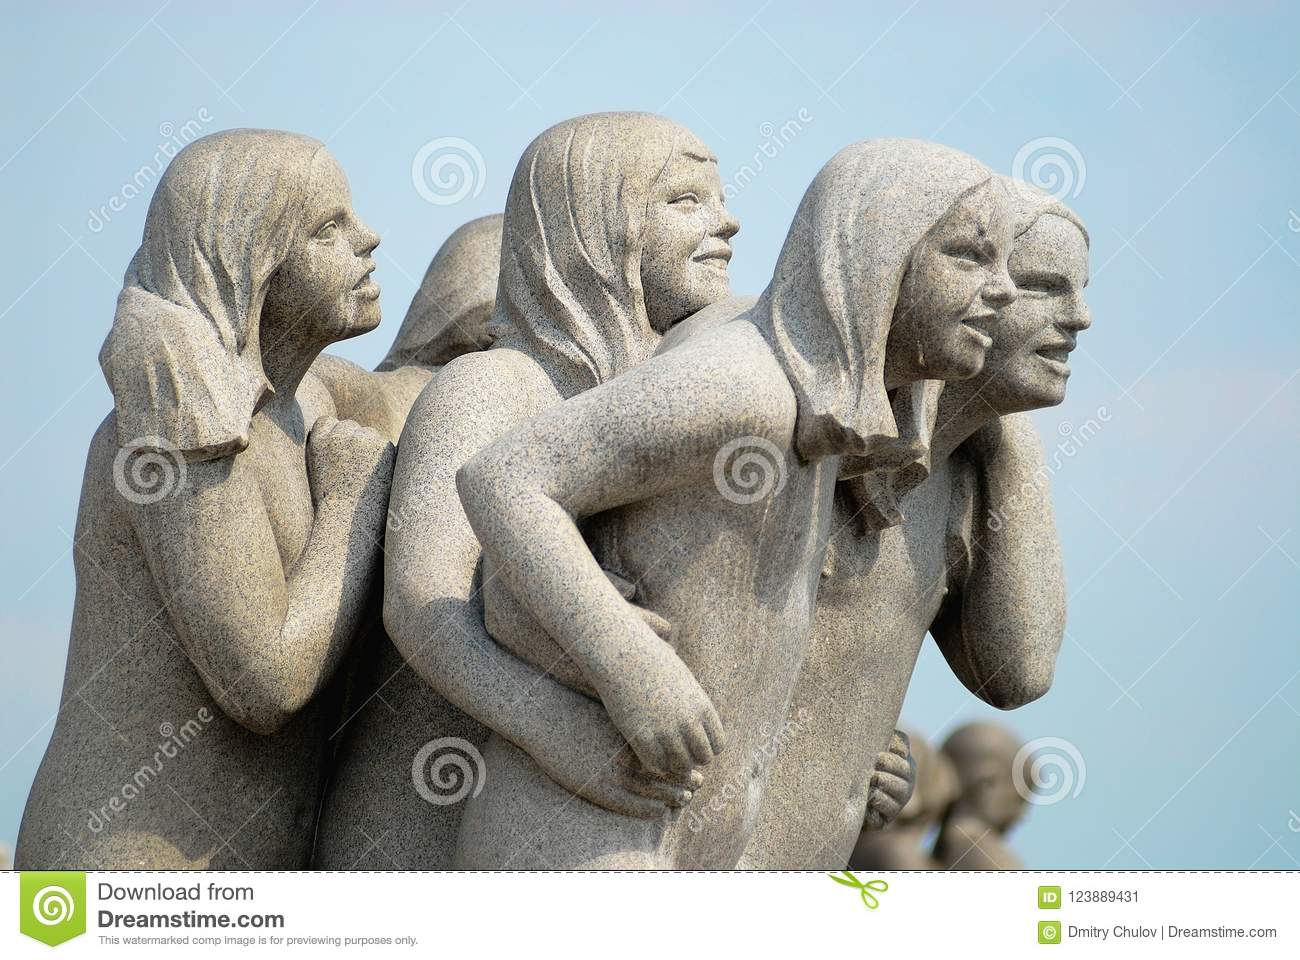 Fragment of the granite sculpture made by the famous artist Gustav Vigeland in open air Frogner park in Oslo, Norway.